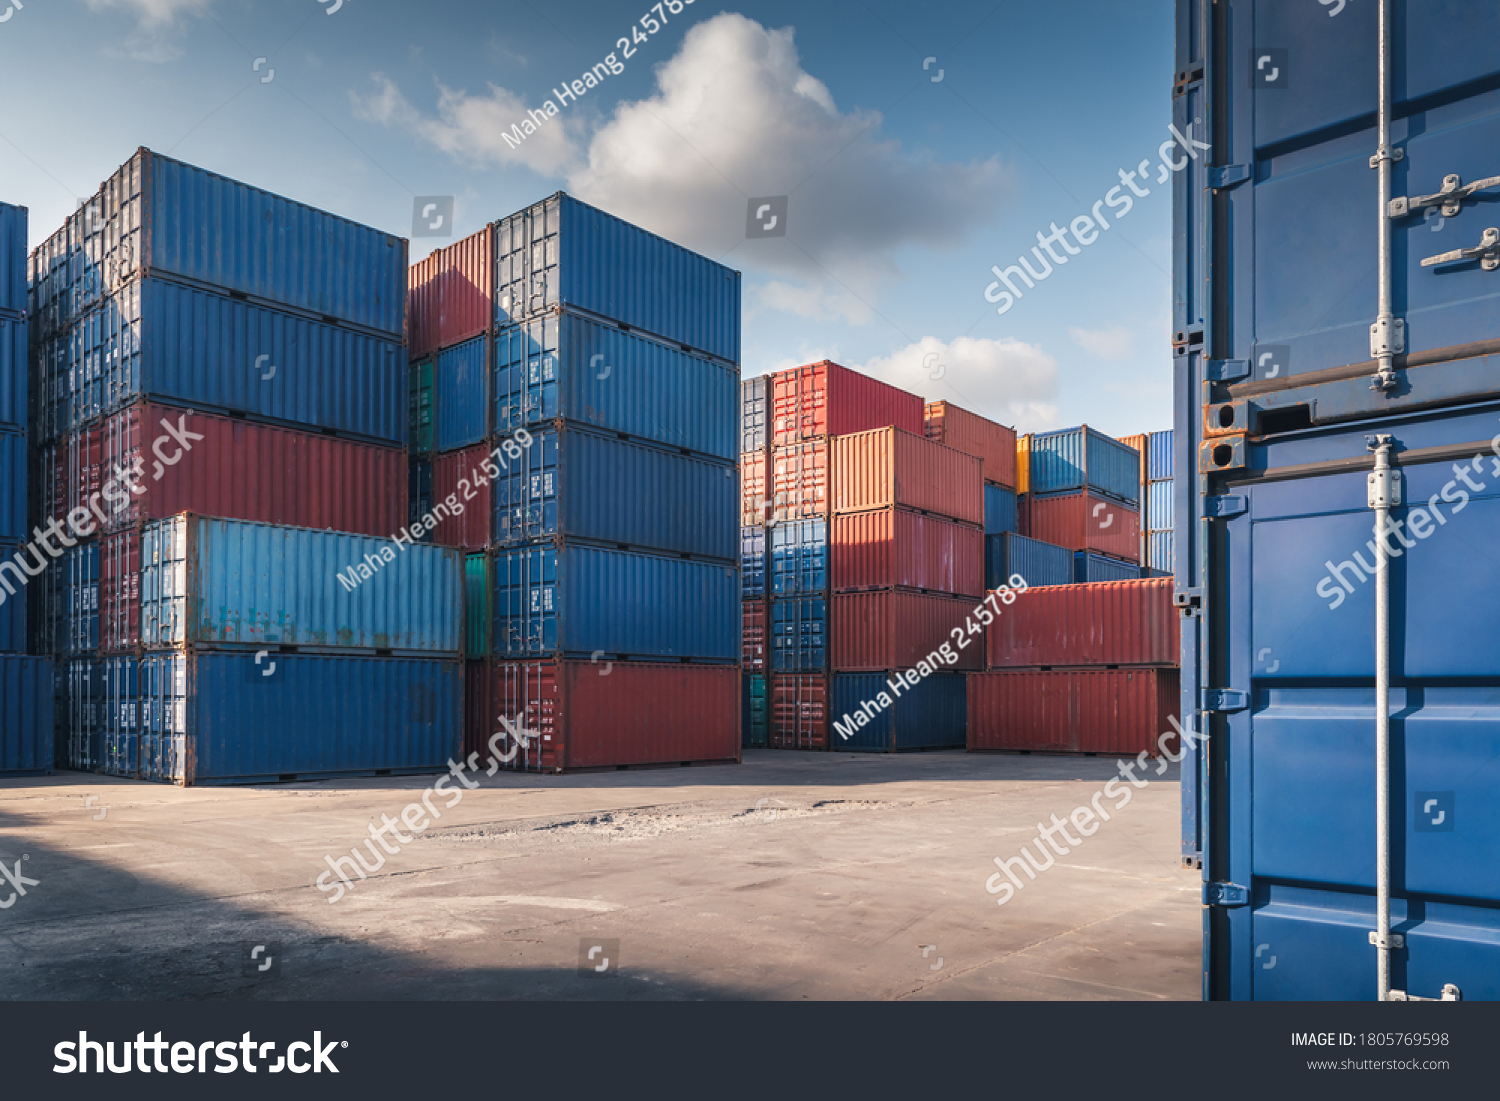 Stack of Containers Cargo Ship Import/Export in Harbor Port, Cargo Freight Shipping of Container Logistics Industry. Nautical Transport Distribution Yard, Business Commercial Dock and Transportation.  #1805769598